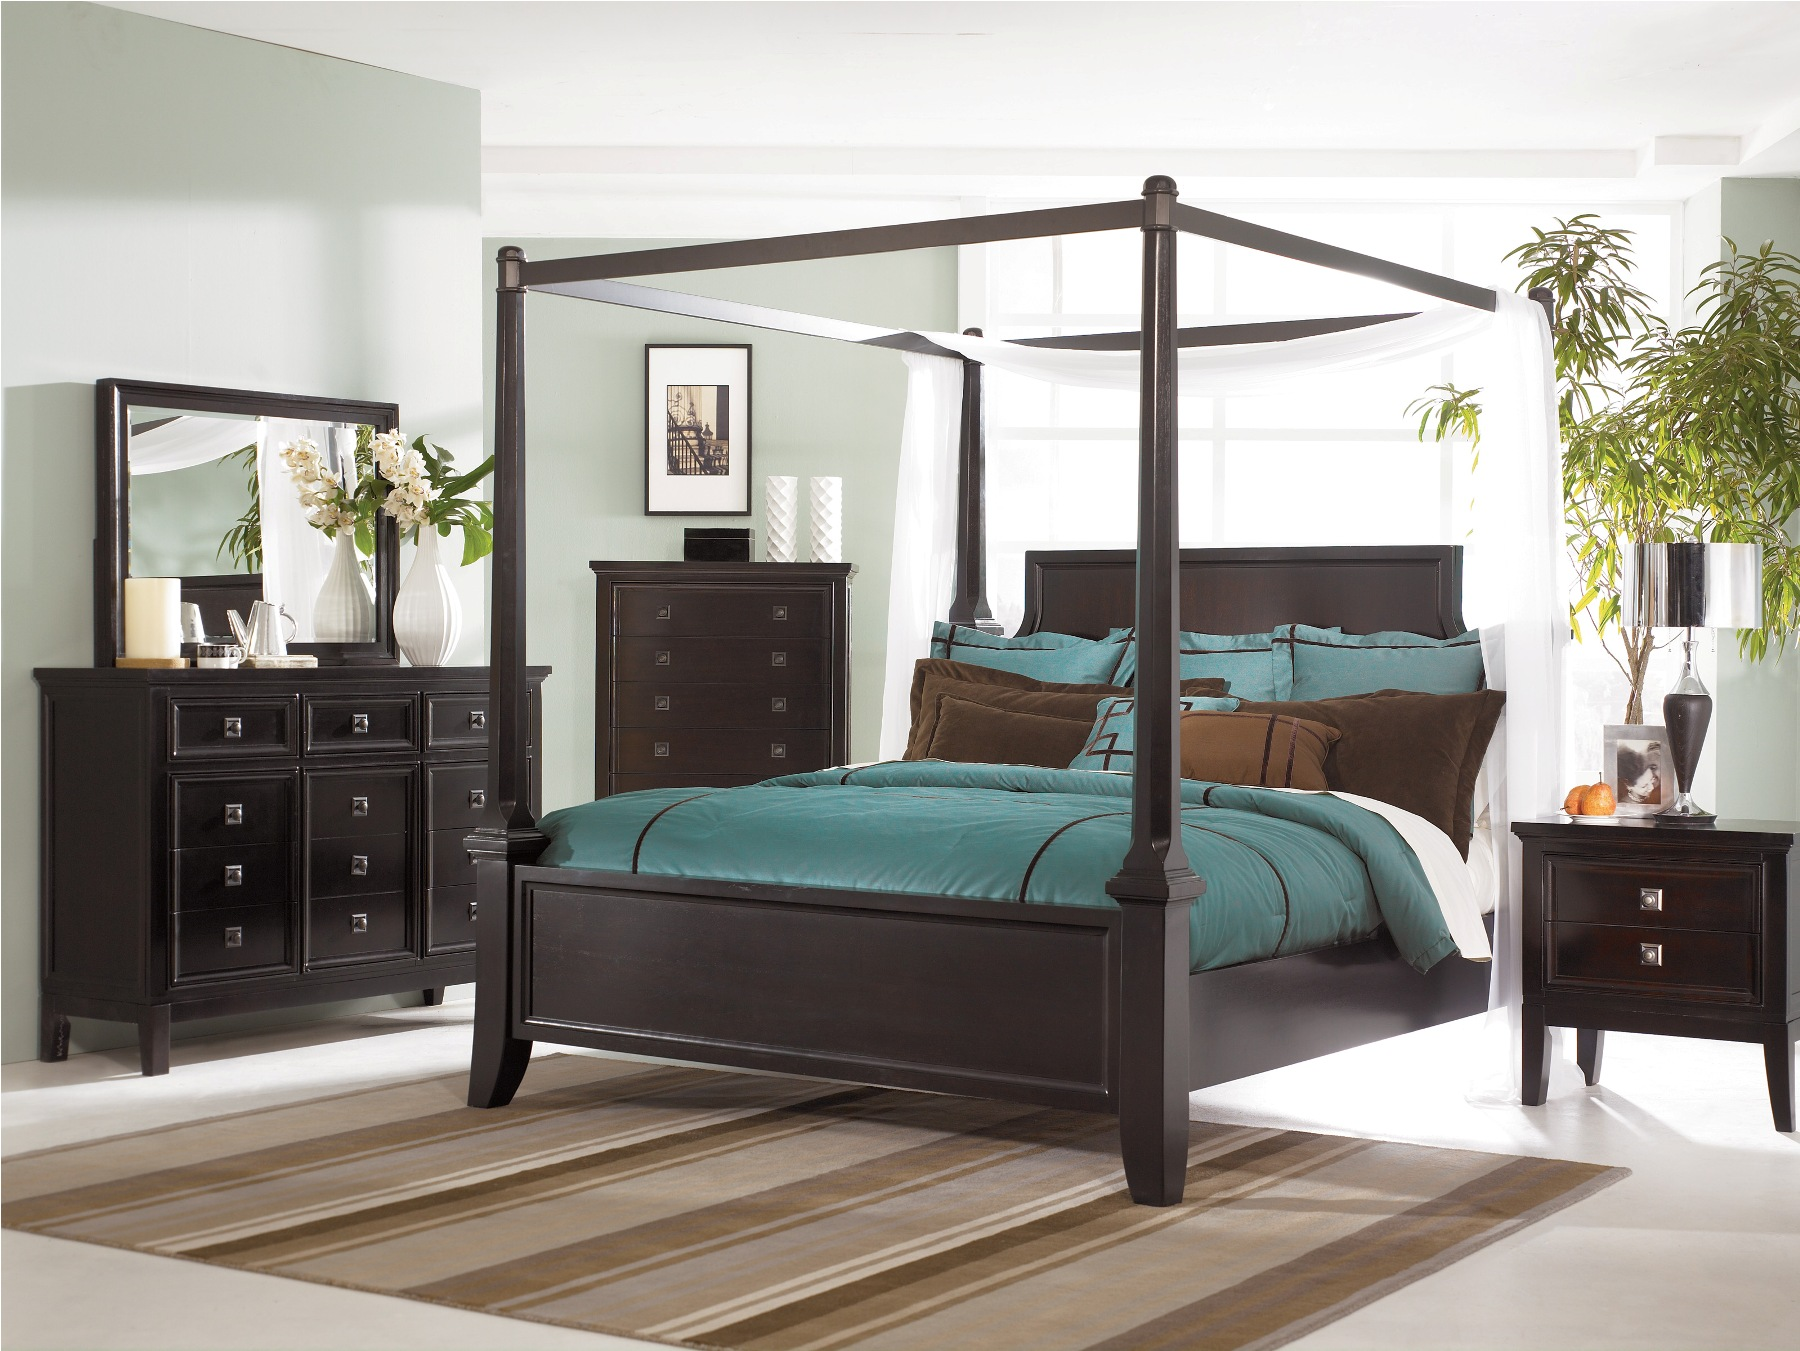 Diana Platform Bedroom Set of Ashley Furniture